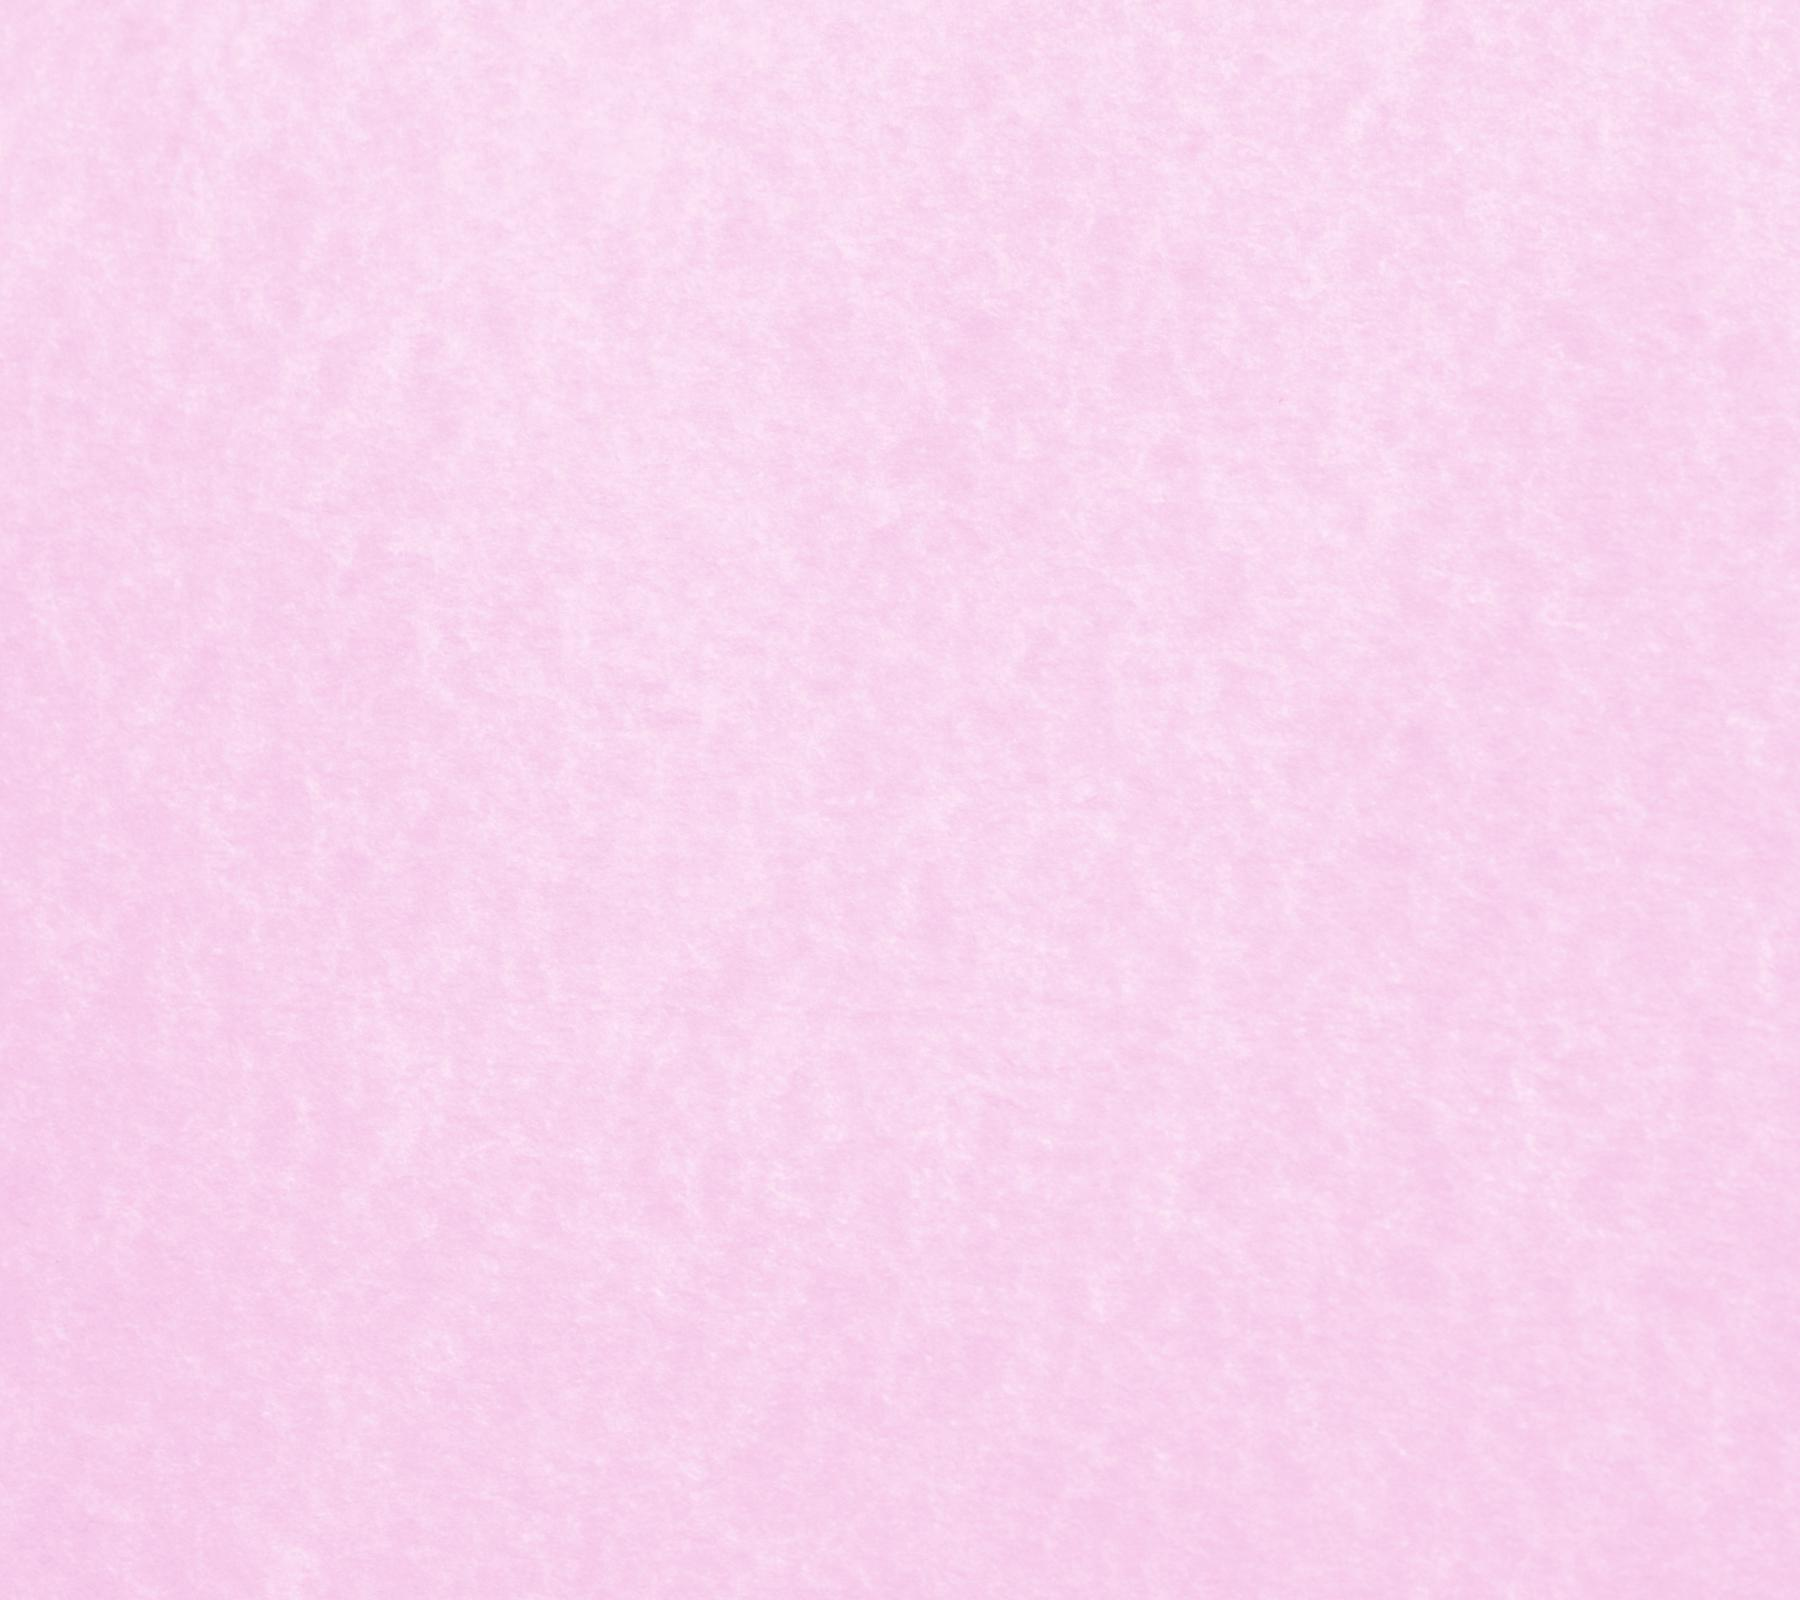 Free Download Plain Pastel Pink Background 1800x1600 For Your